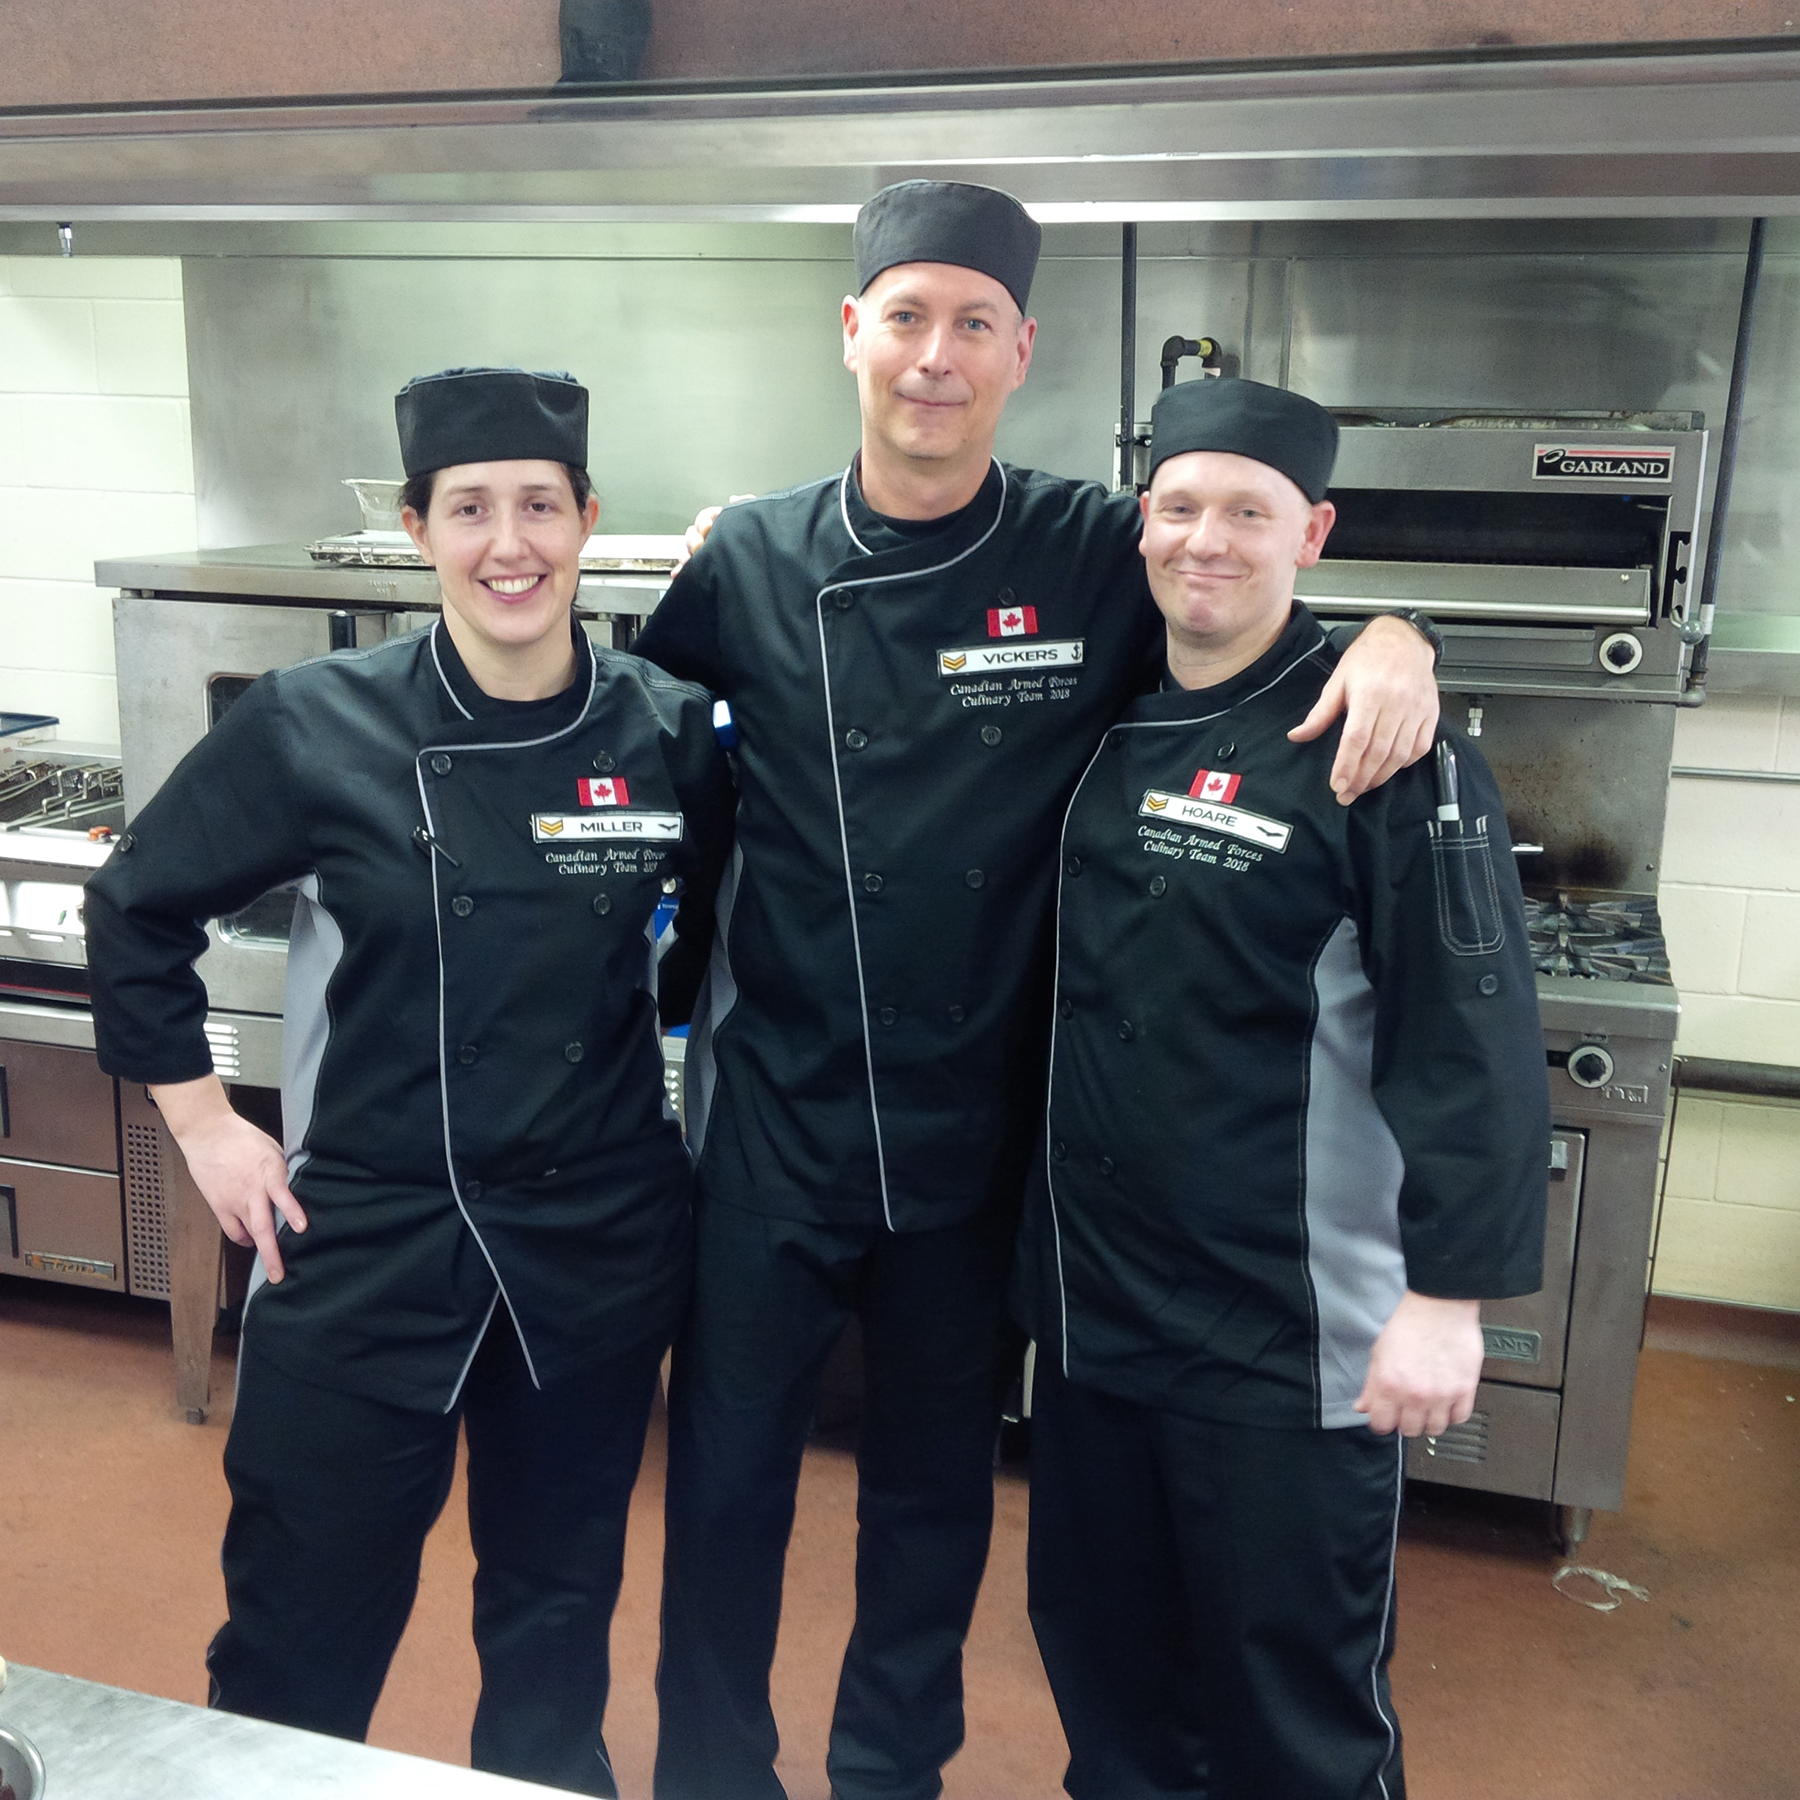 Two men and a woman in black chef's clothing stand in a line in a kitchen with their arms around each other's shoulders.